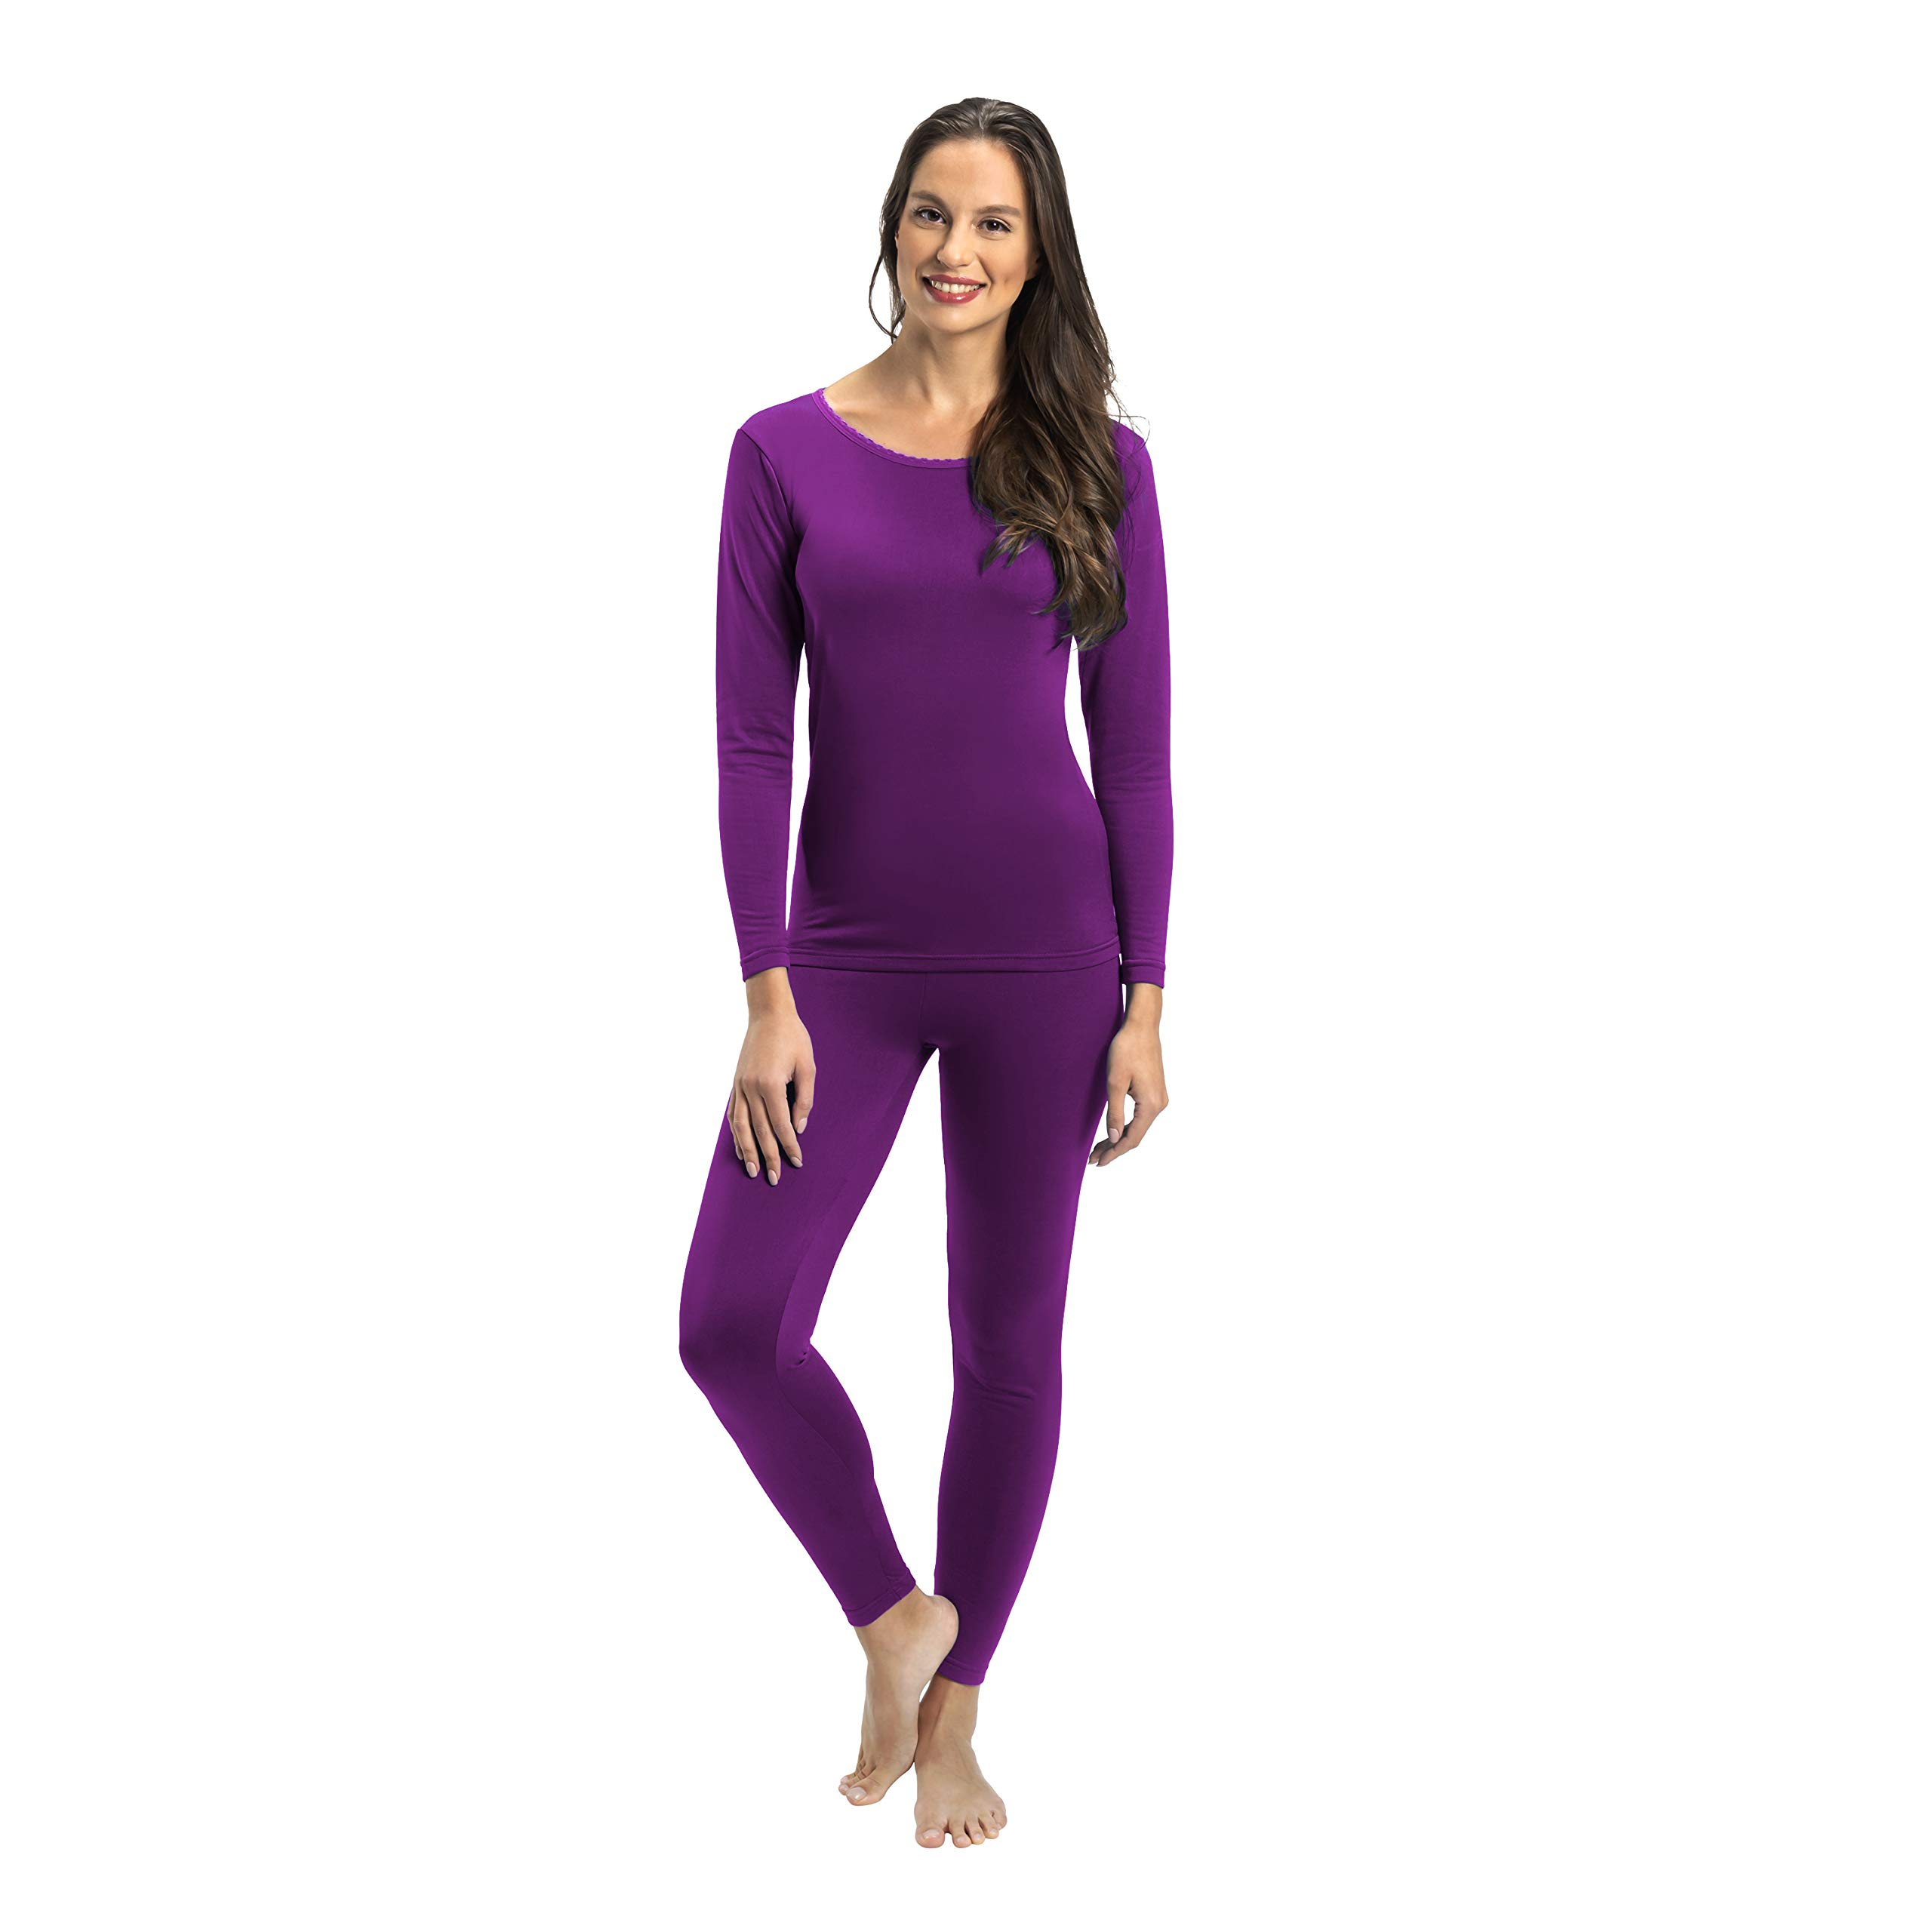 Rocky Womens Thermal 2 Pc Long John Underwear Set Top and Bottom Smooth Knit (Medium, Purple) by Rocky